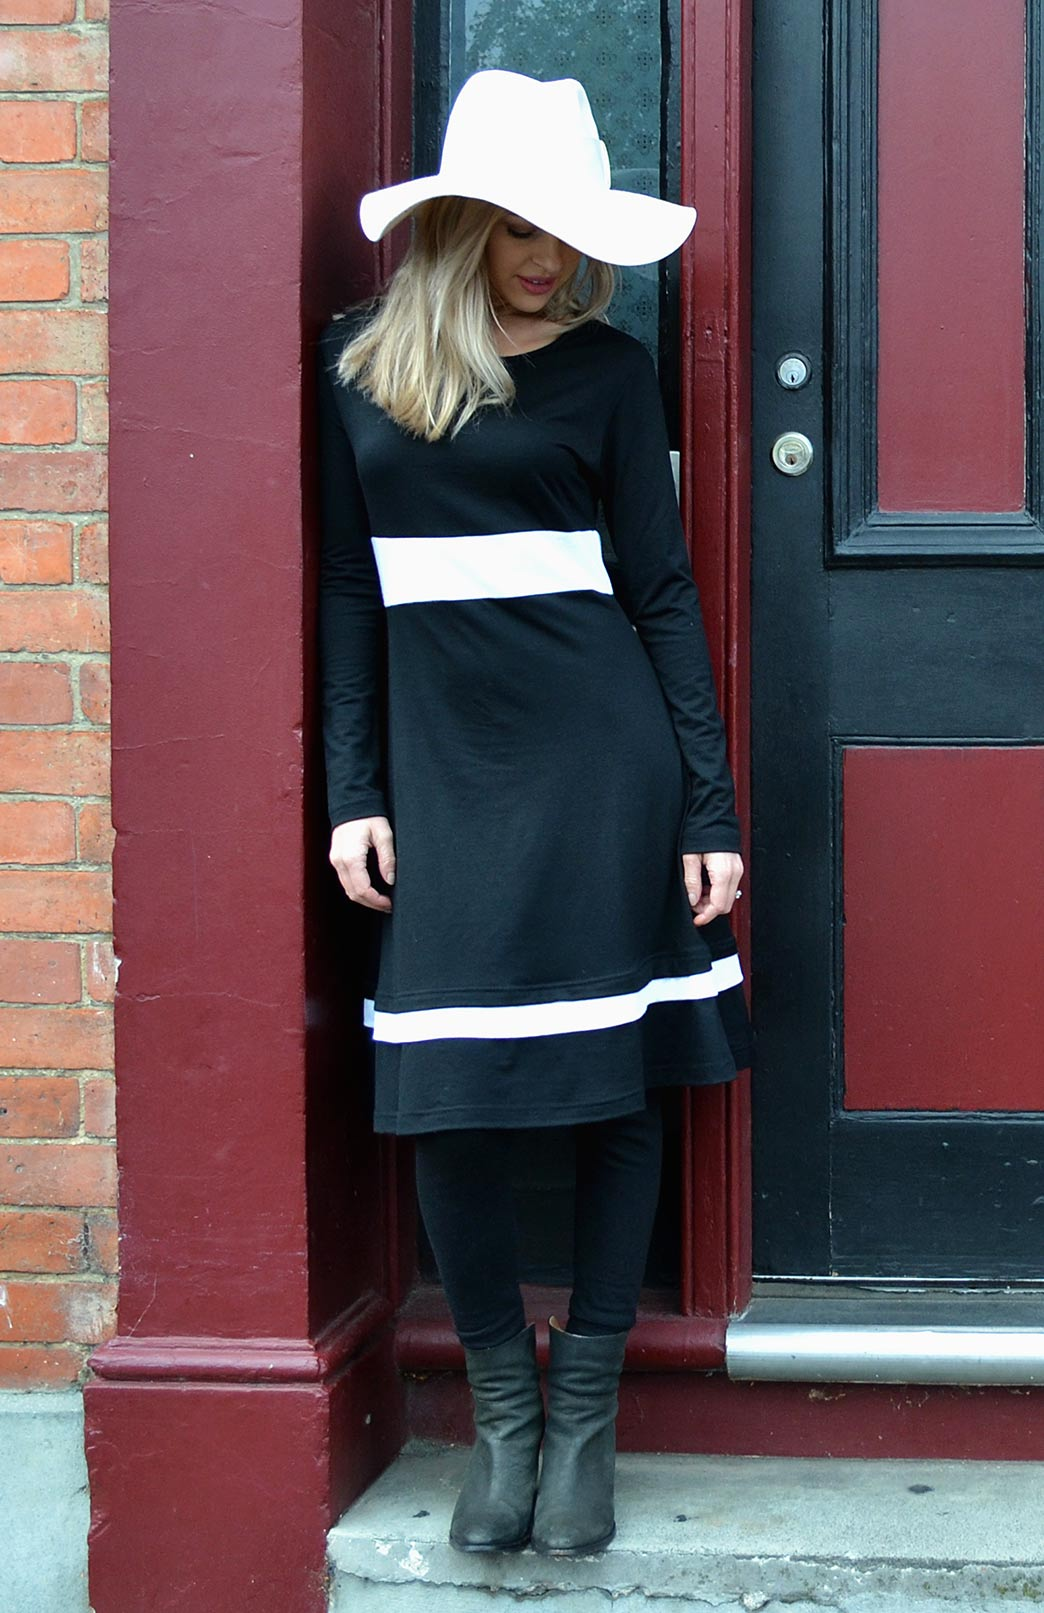 Indi Dress - Women's Black & Cream Long Sleeve Winter Wool Dress - Smitten Merino Tasmania Australia